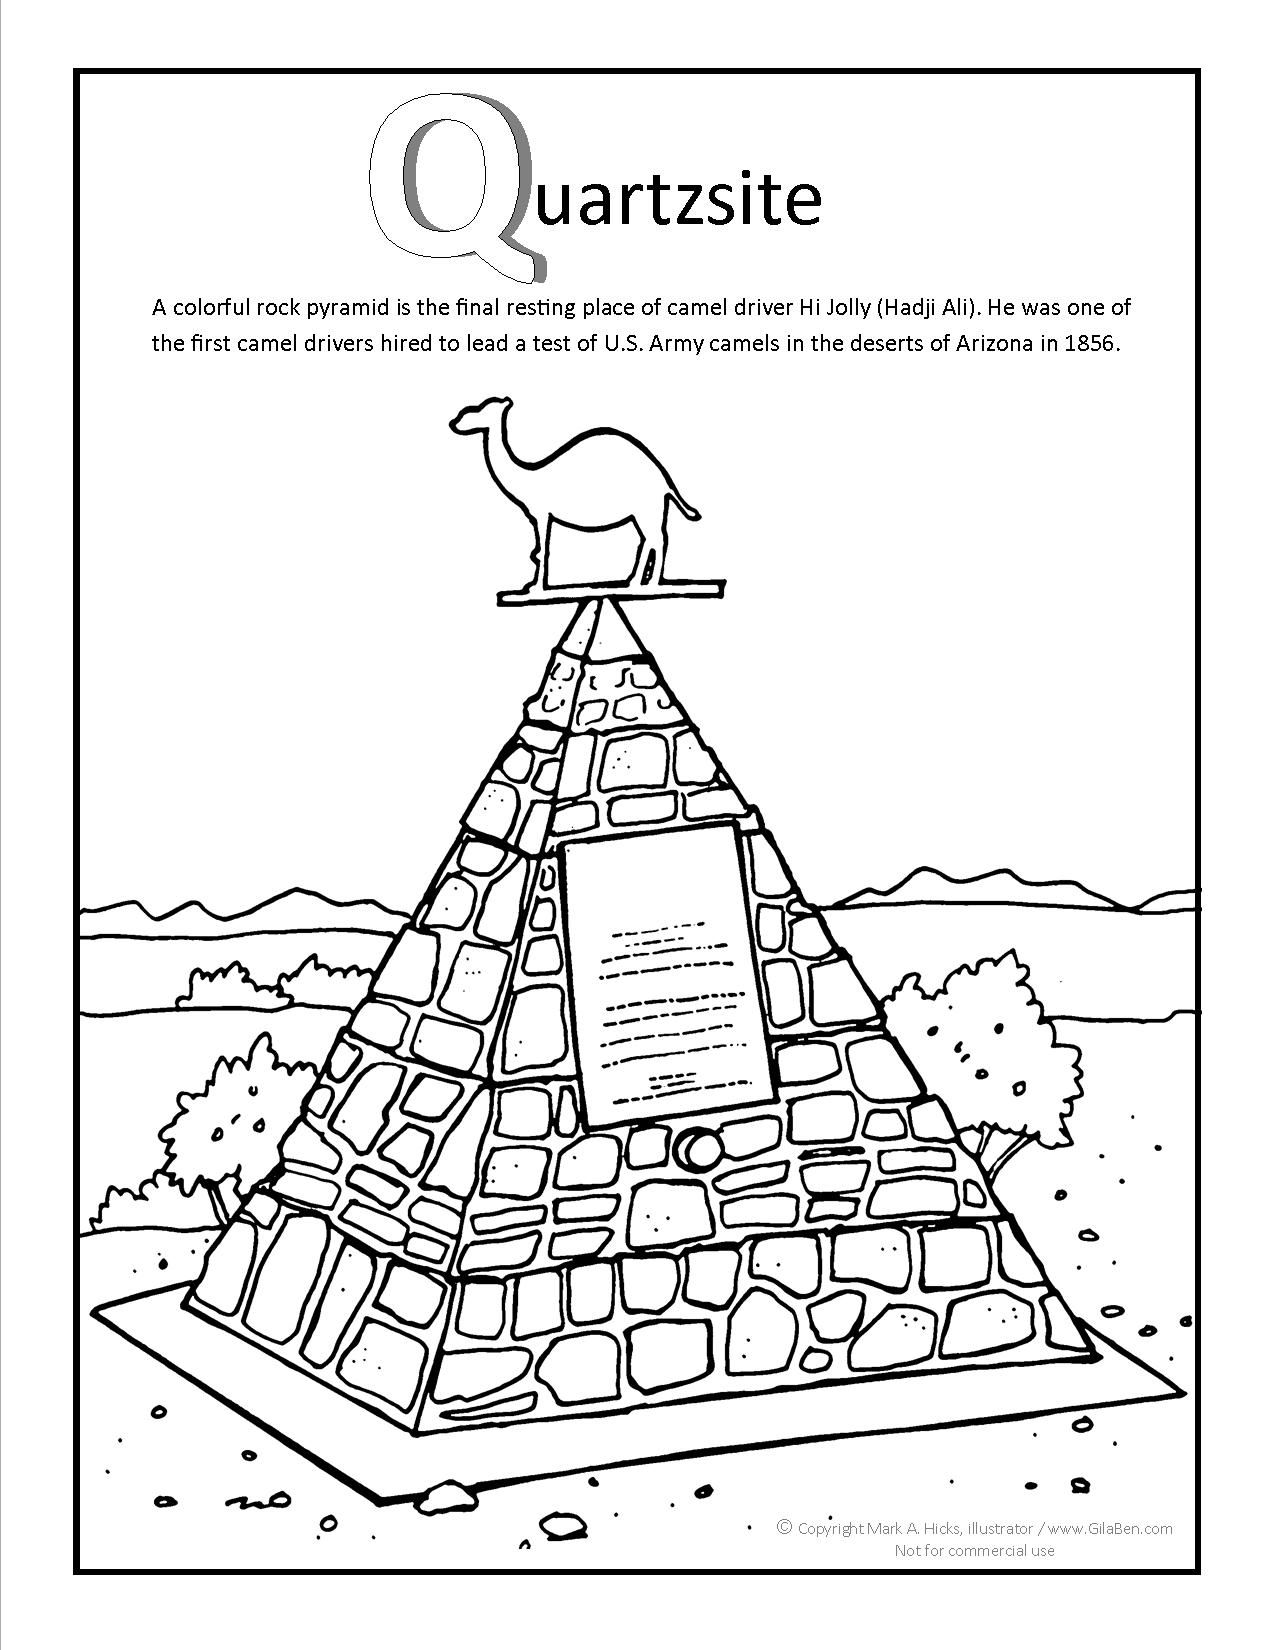 Quartsite Arizona Coloring Page At Gilaben Com Coloring Pages Color